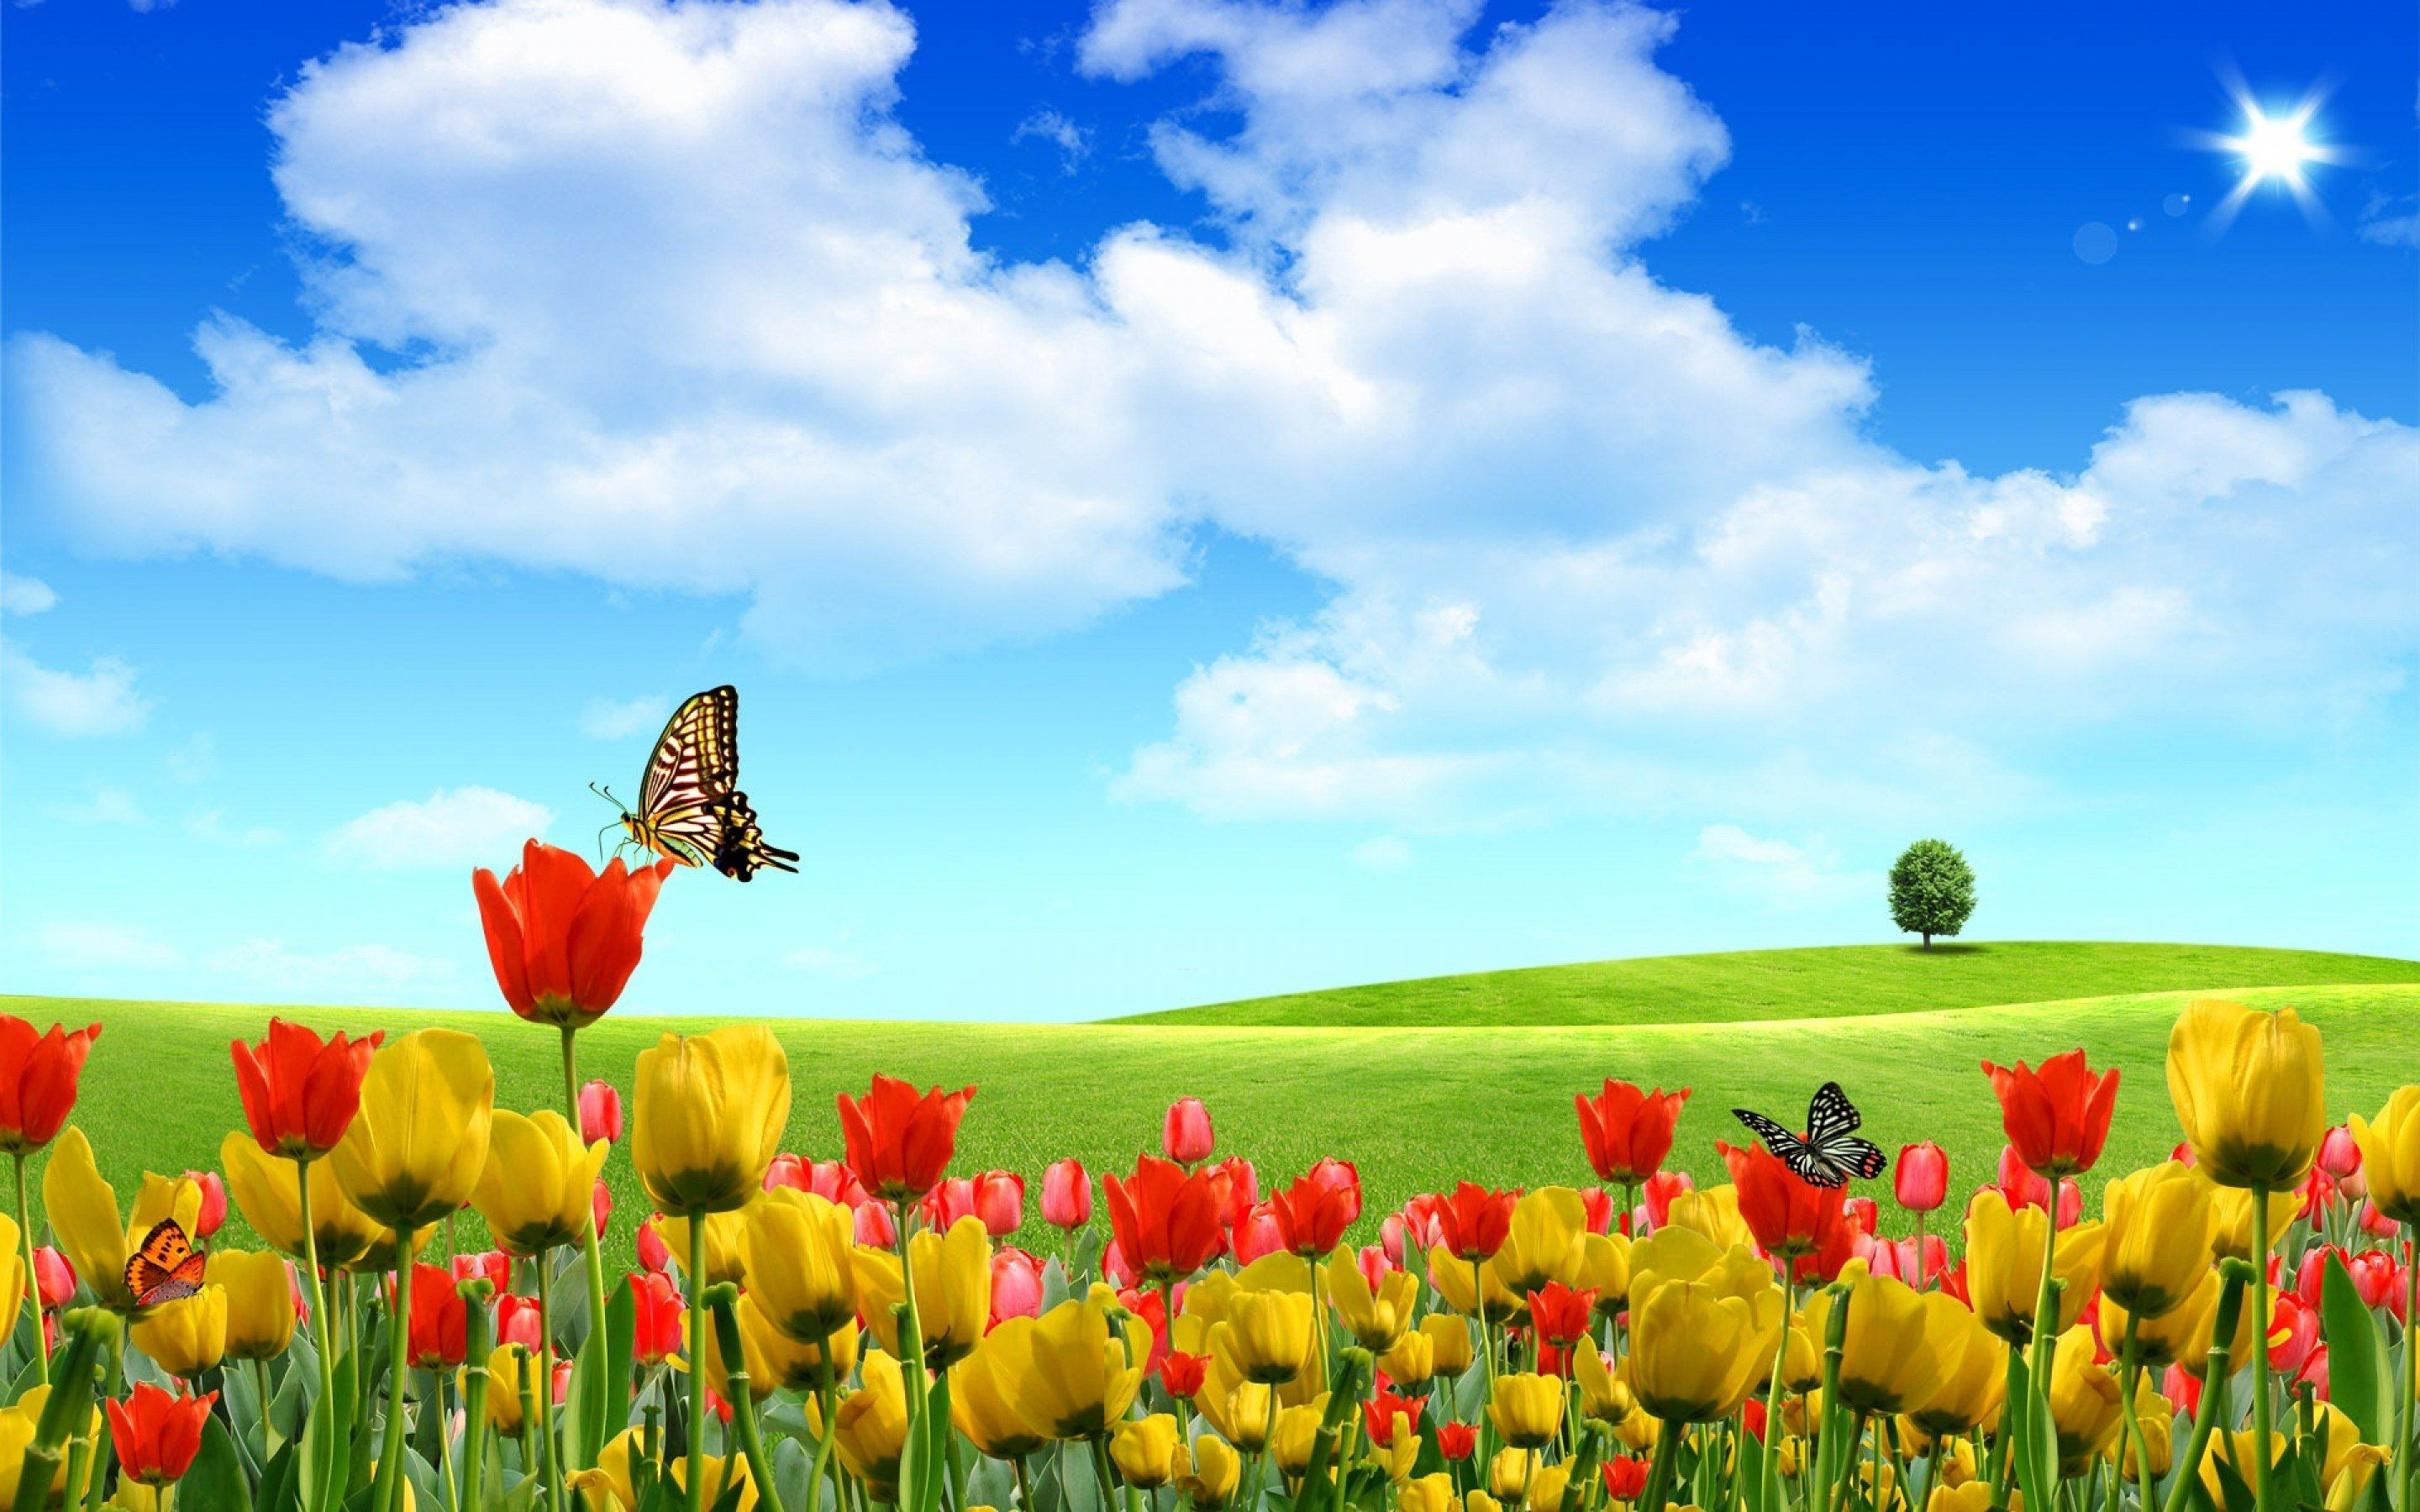 Flower field tulip flower wallpaper the wallpaper desktop flower flower field tulip flower wallpaper the wallpaper desktop mightylinksfo